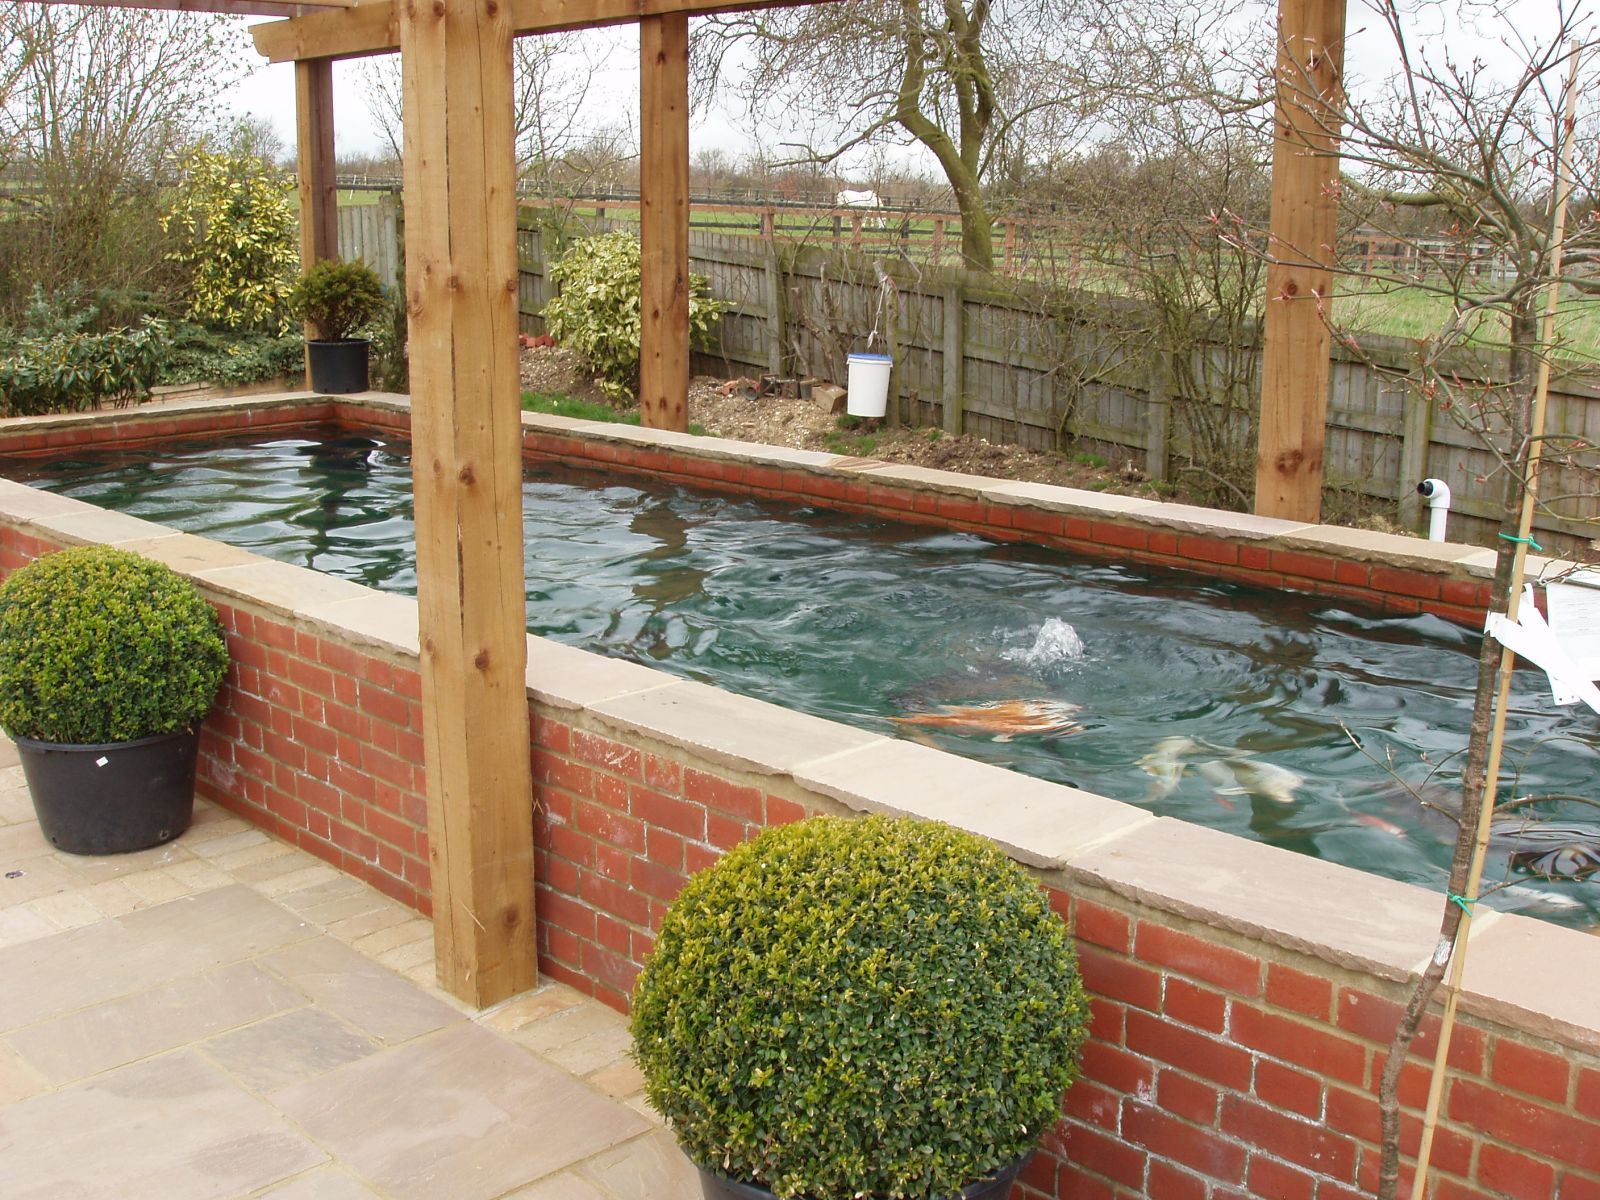 Pond design ideas raised koi ponds pond stars uk dorset for Pond features